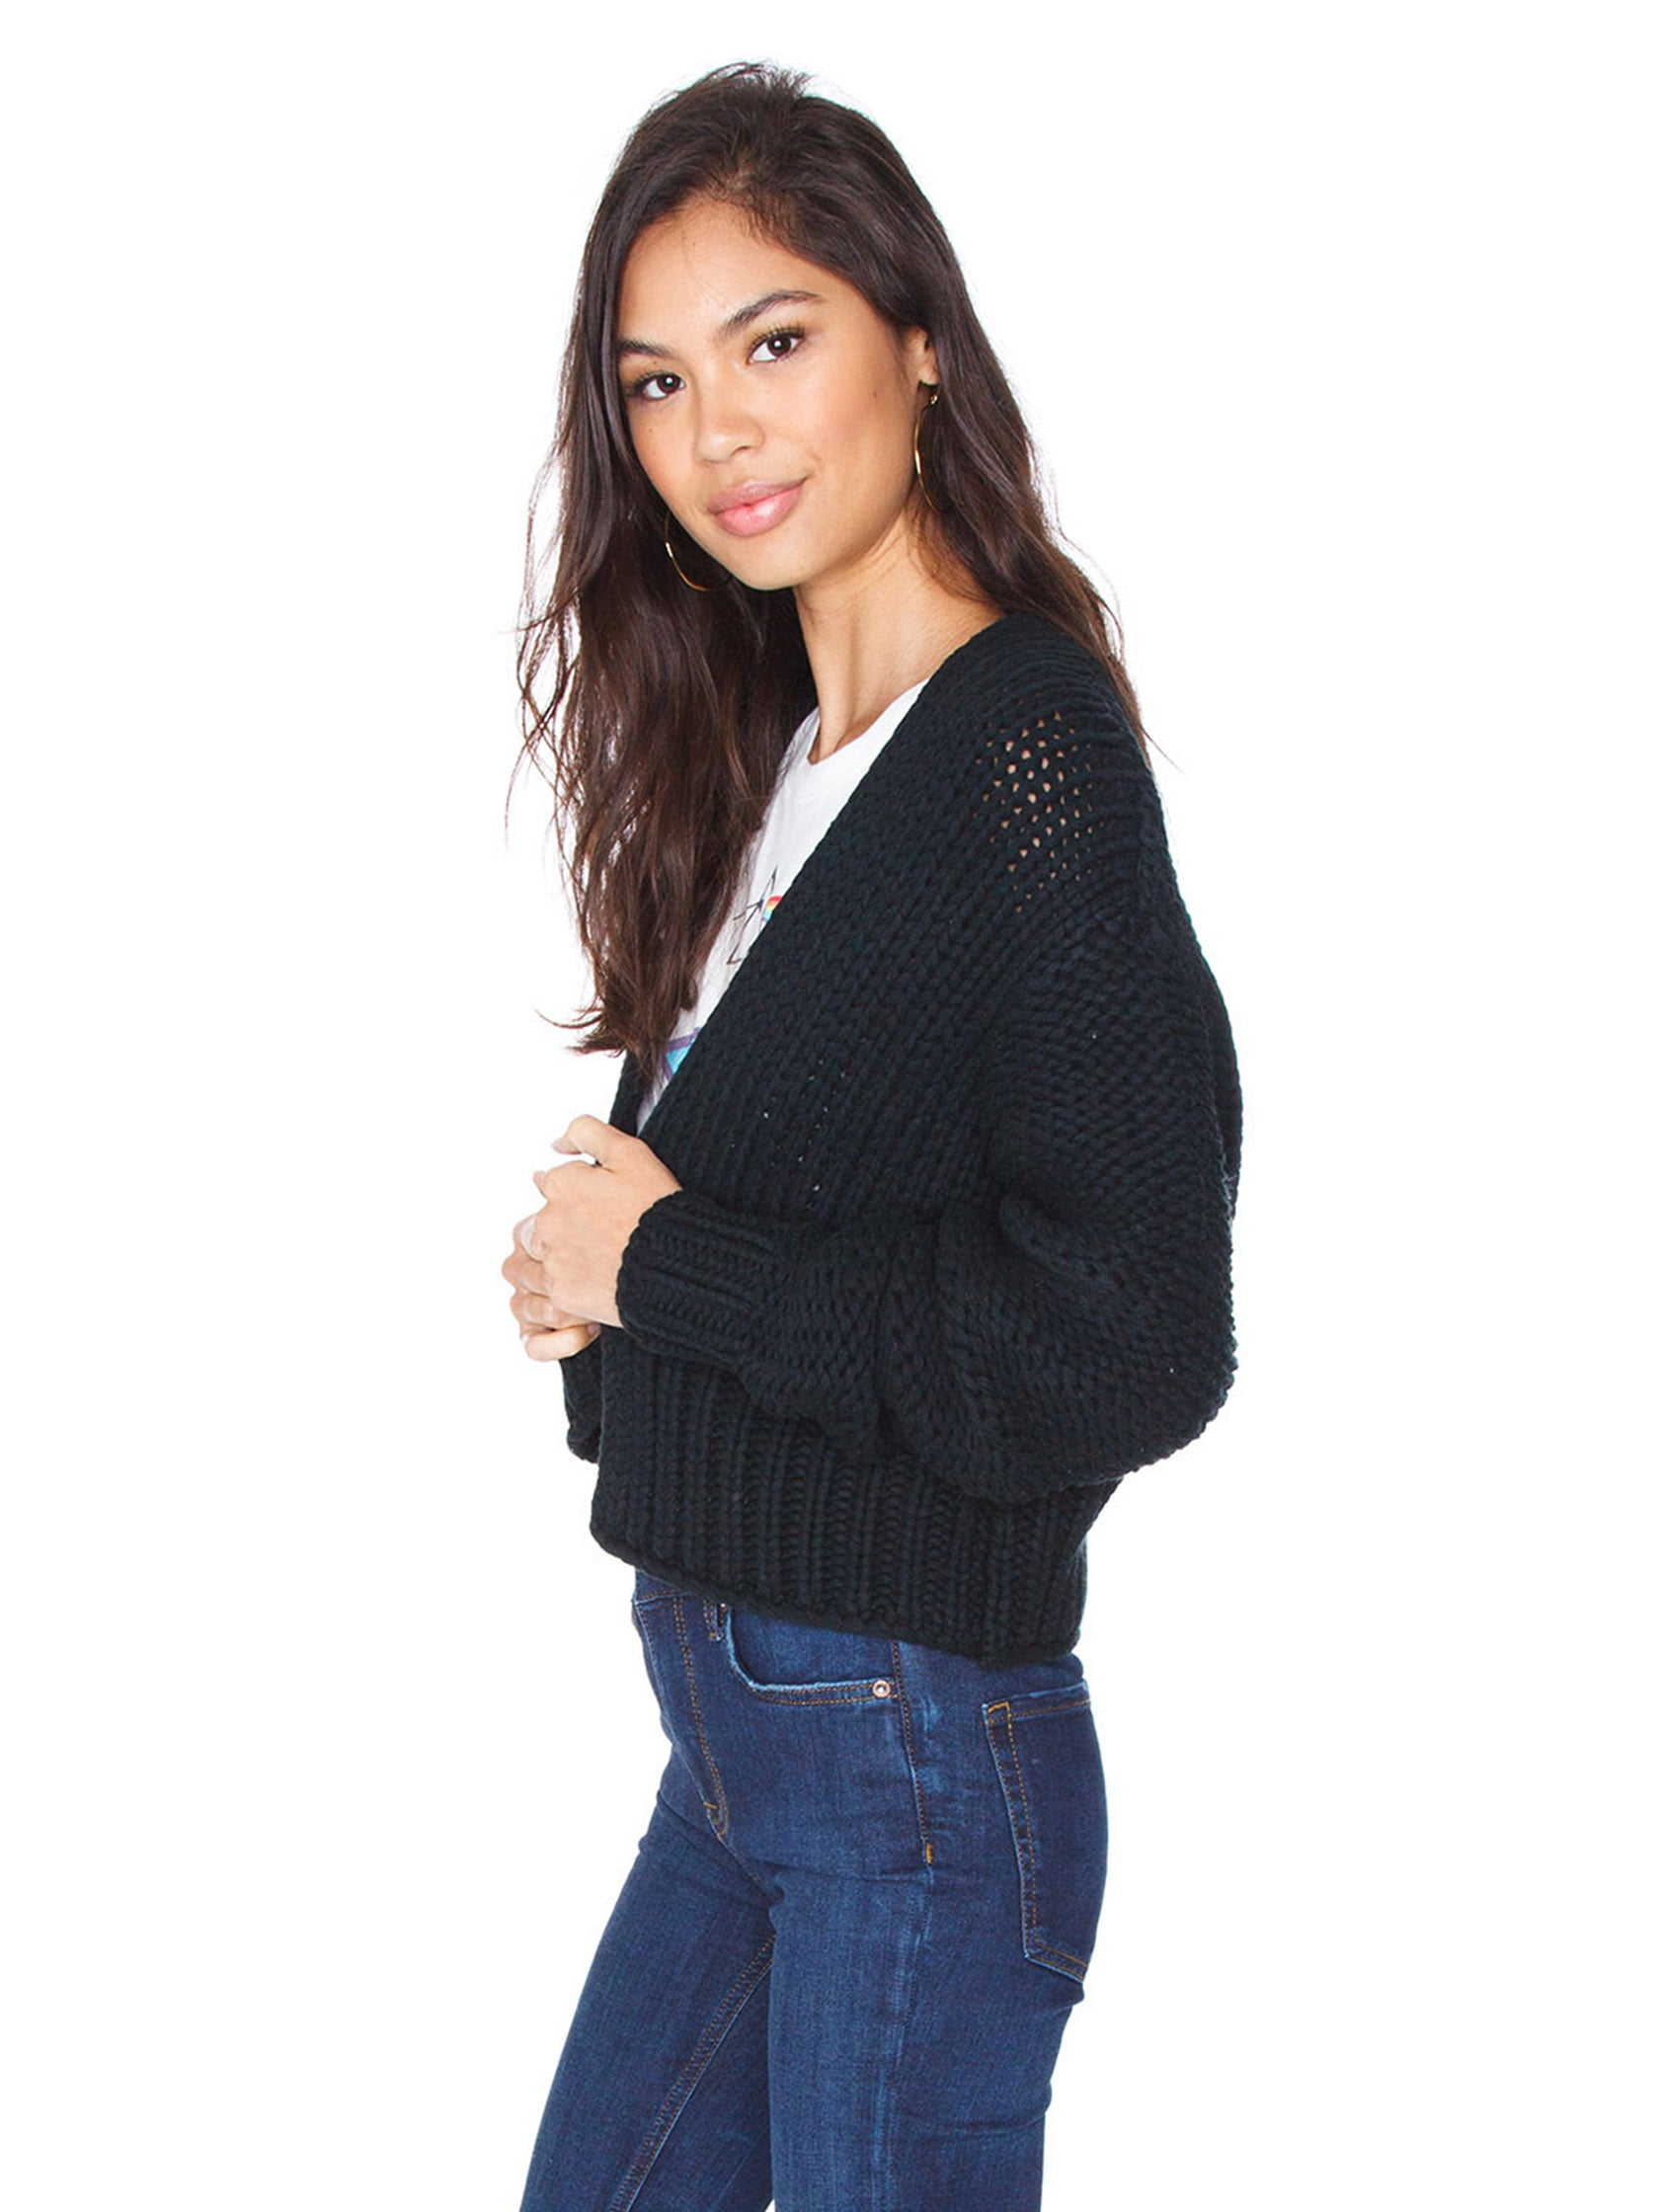 Women wearing a cardigan rental from Free People called Glow For It Cardi